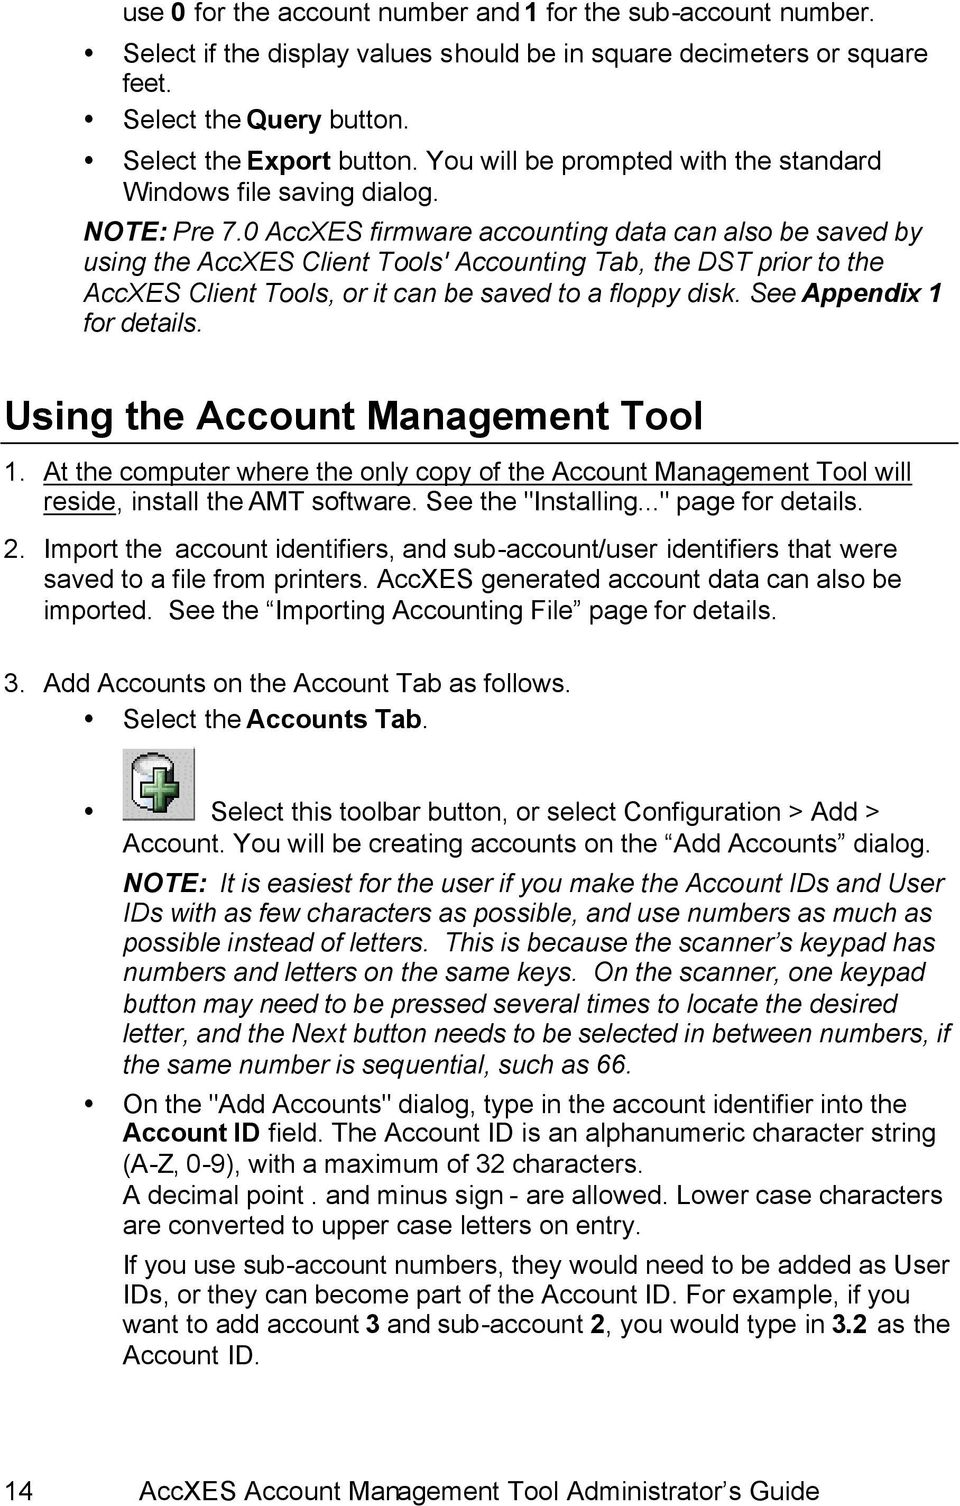 0 AccXES firmware accounting data can also be saved by using the AccXES Client Tools' Accounting Tab, the DST prior to the AccXES Client Tools, or it can be saved to a floppy disk.